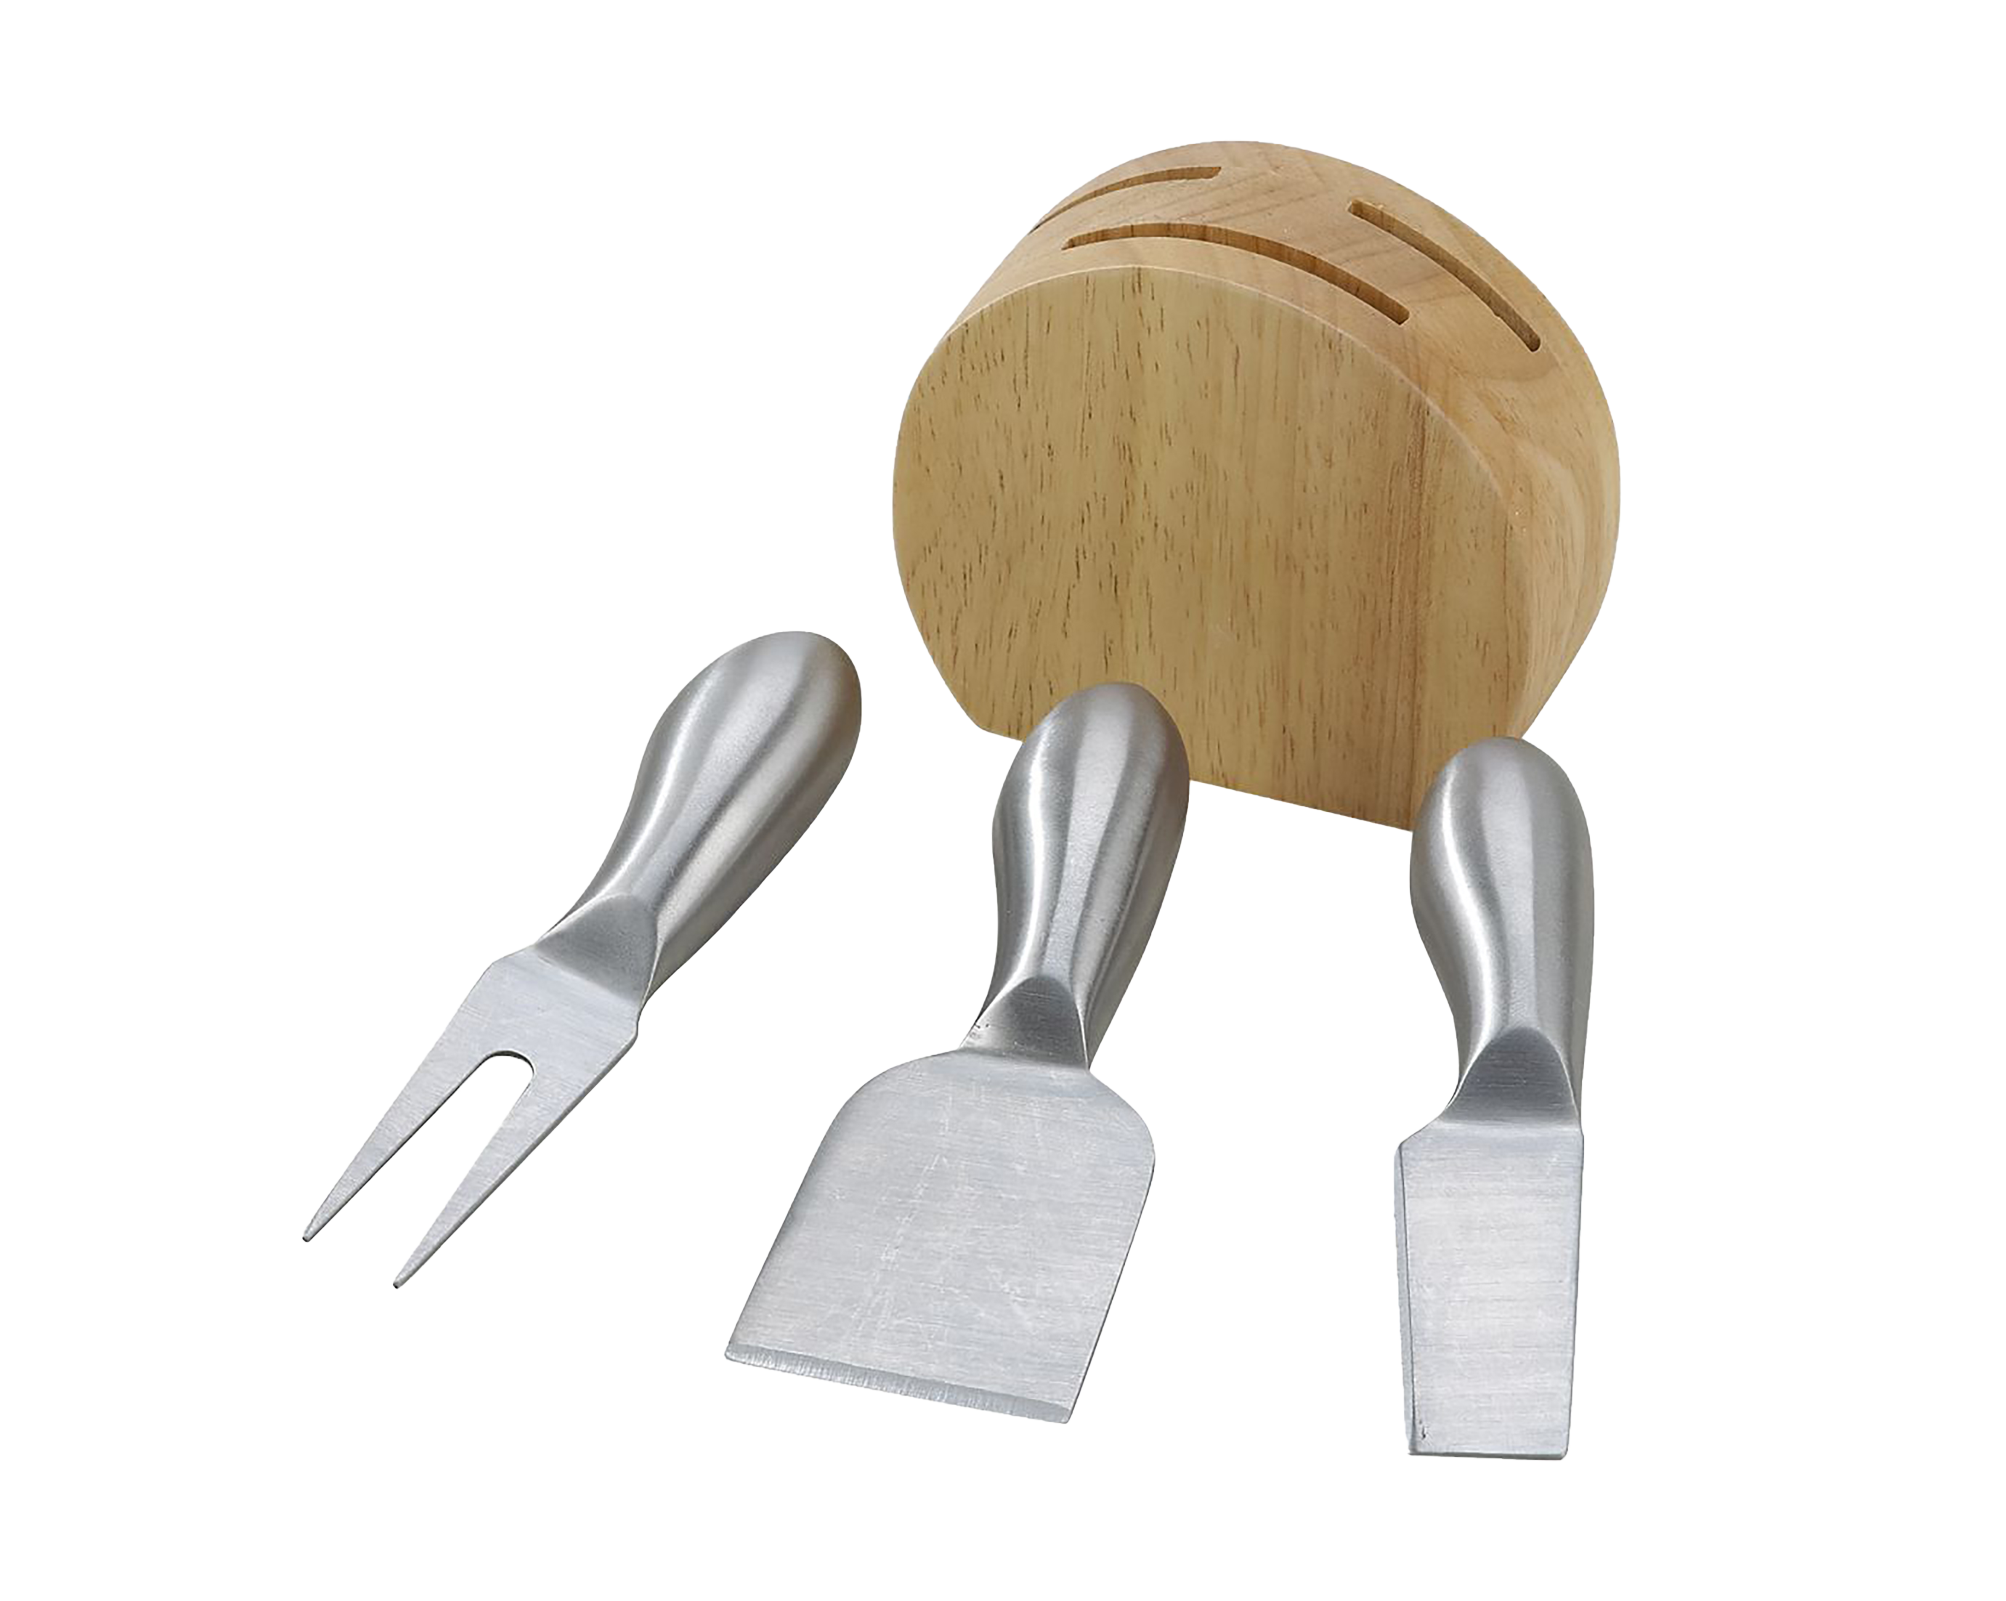 Cheese Knife Set   Personalized Cheese Board Utensils